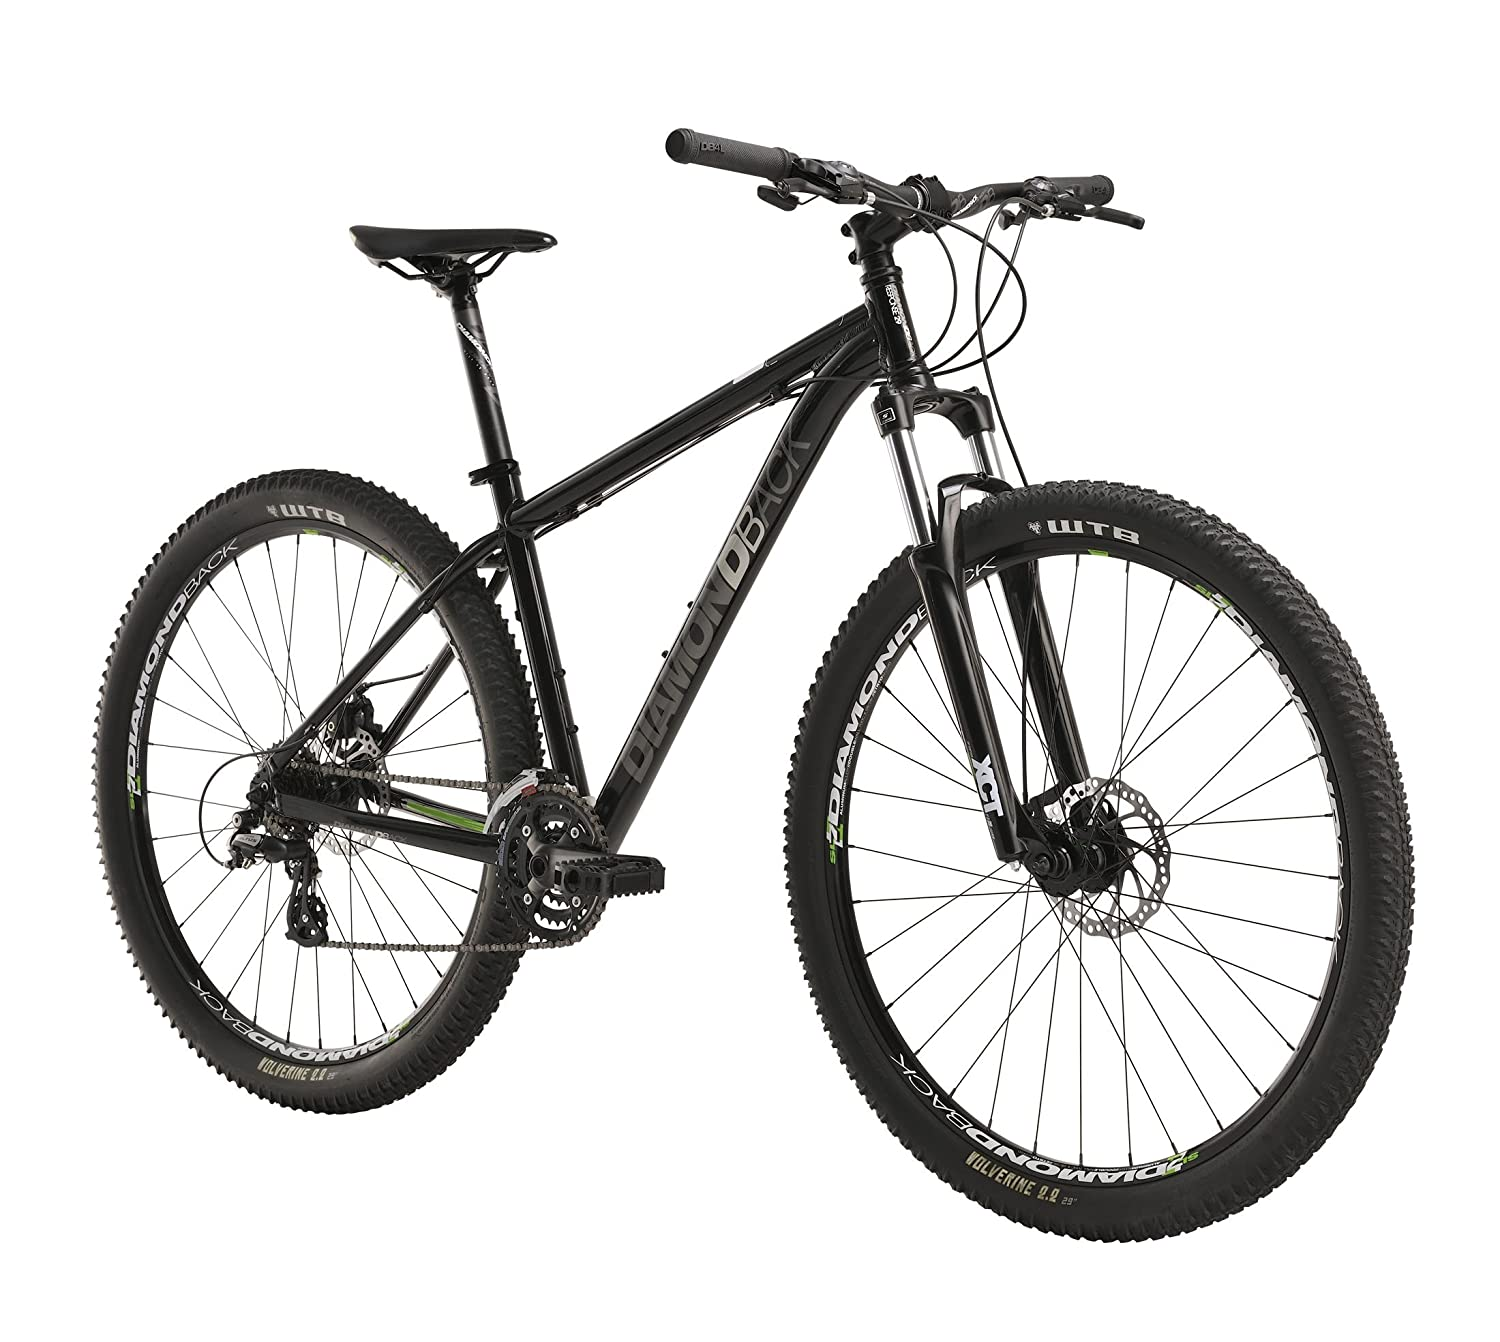 Diamondback Response Mountain Bike with 29-Inch Wheels Black Review 1